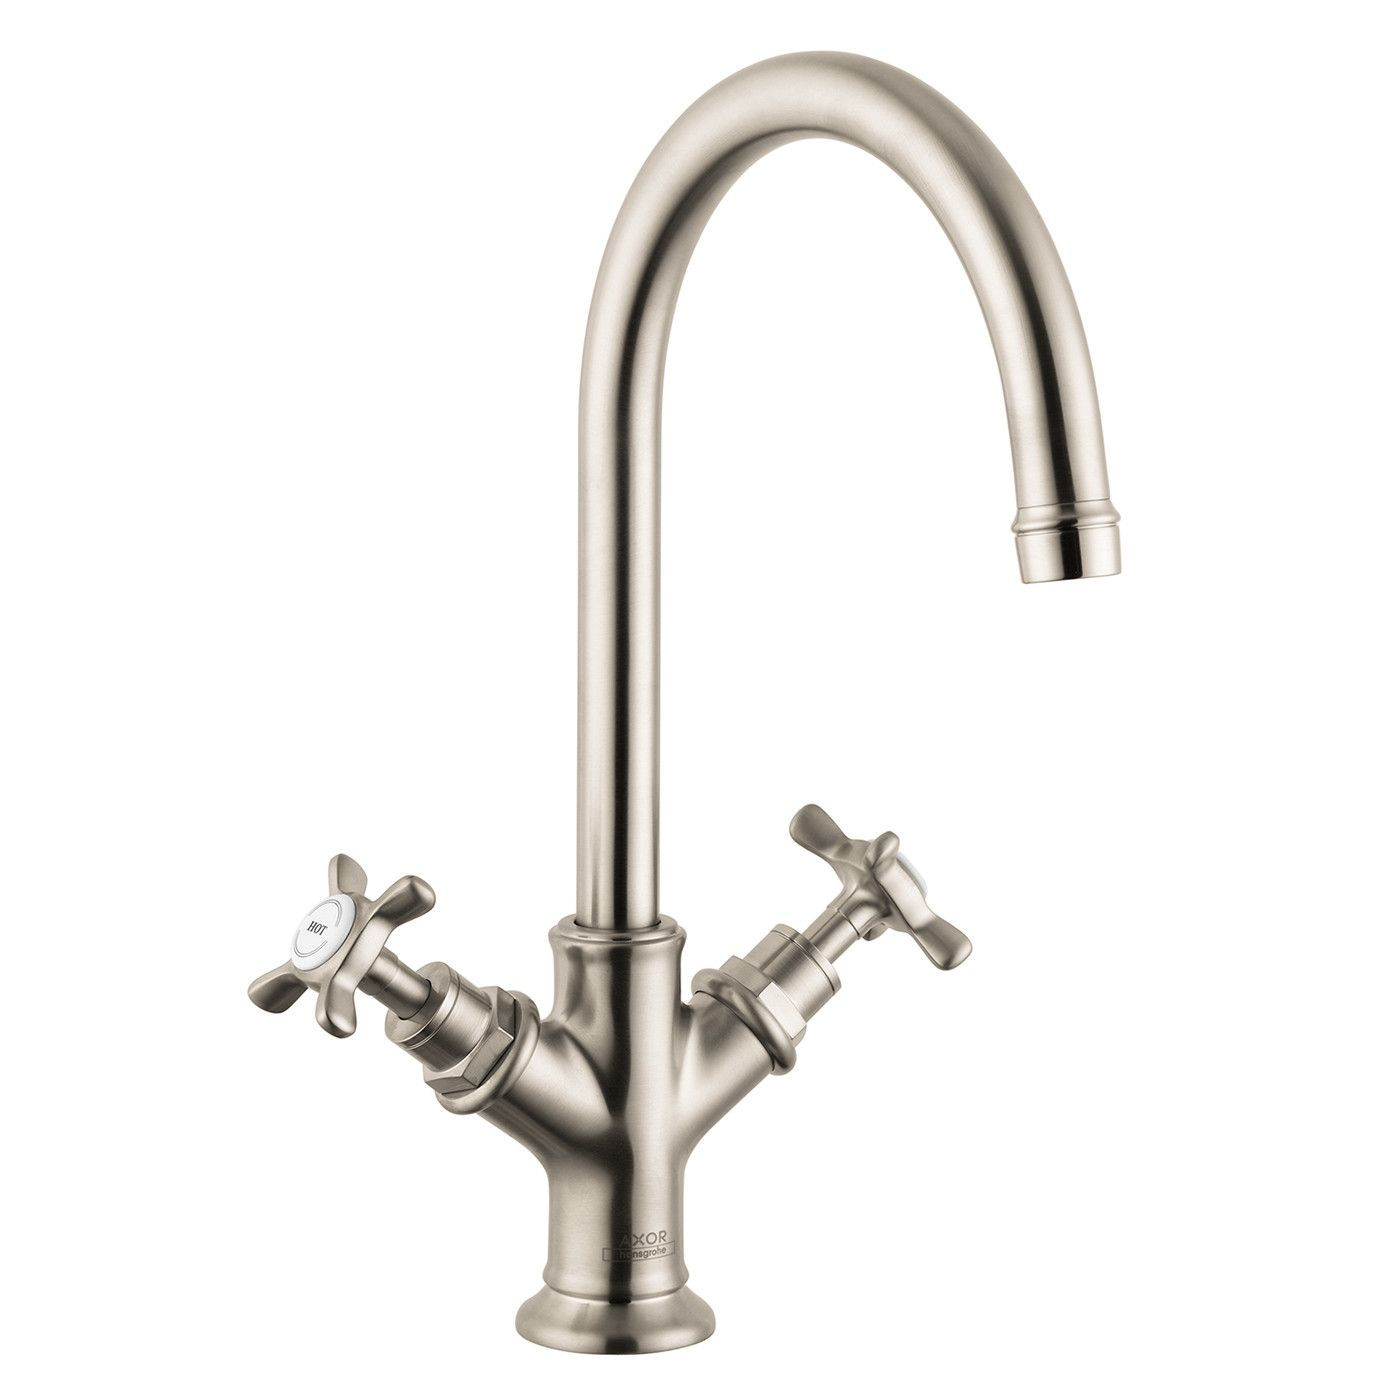 Hansgrohe 16502831 Polished Nickel Axor Montreux Bathroom Faucet ...